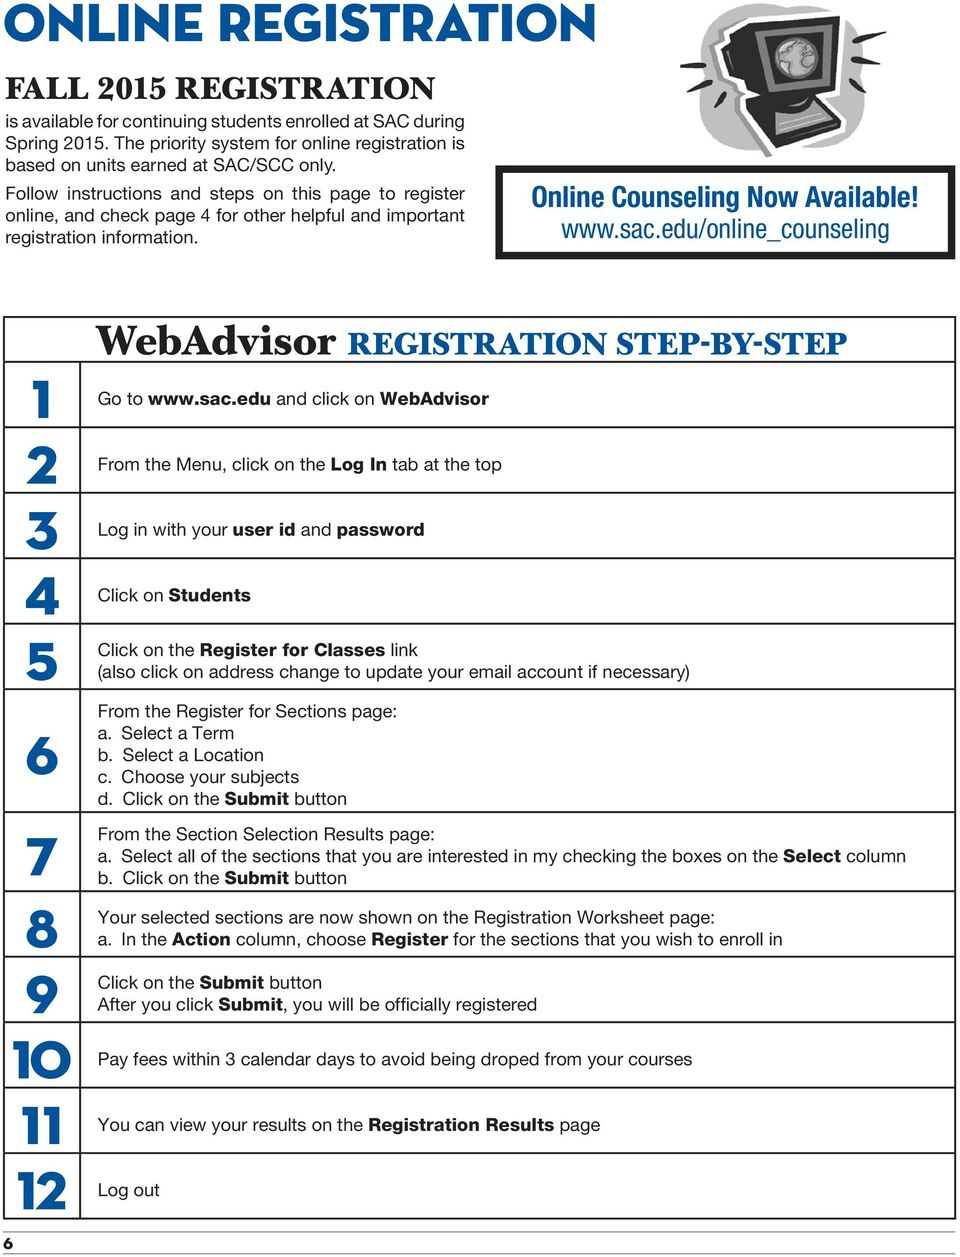 Follow instructions and steps on this page to register online, and check page 4 for other helpful and important registration information. Online Counseling Now Available! www.sac.